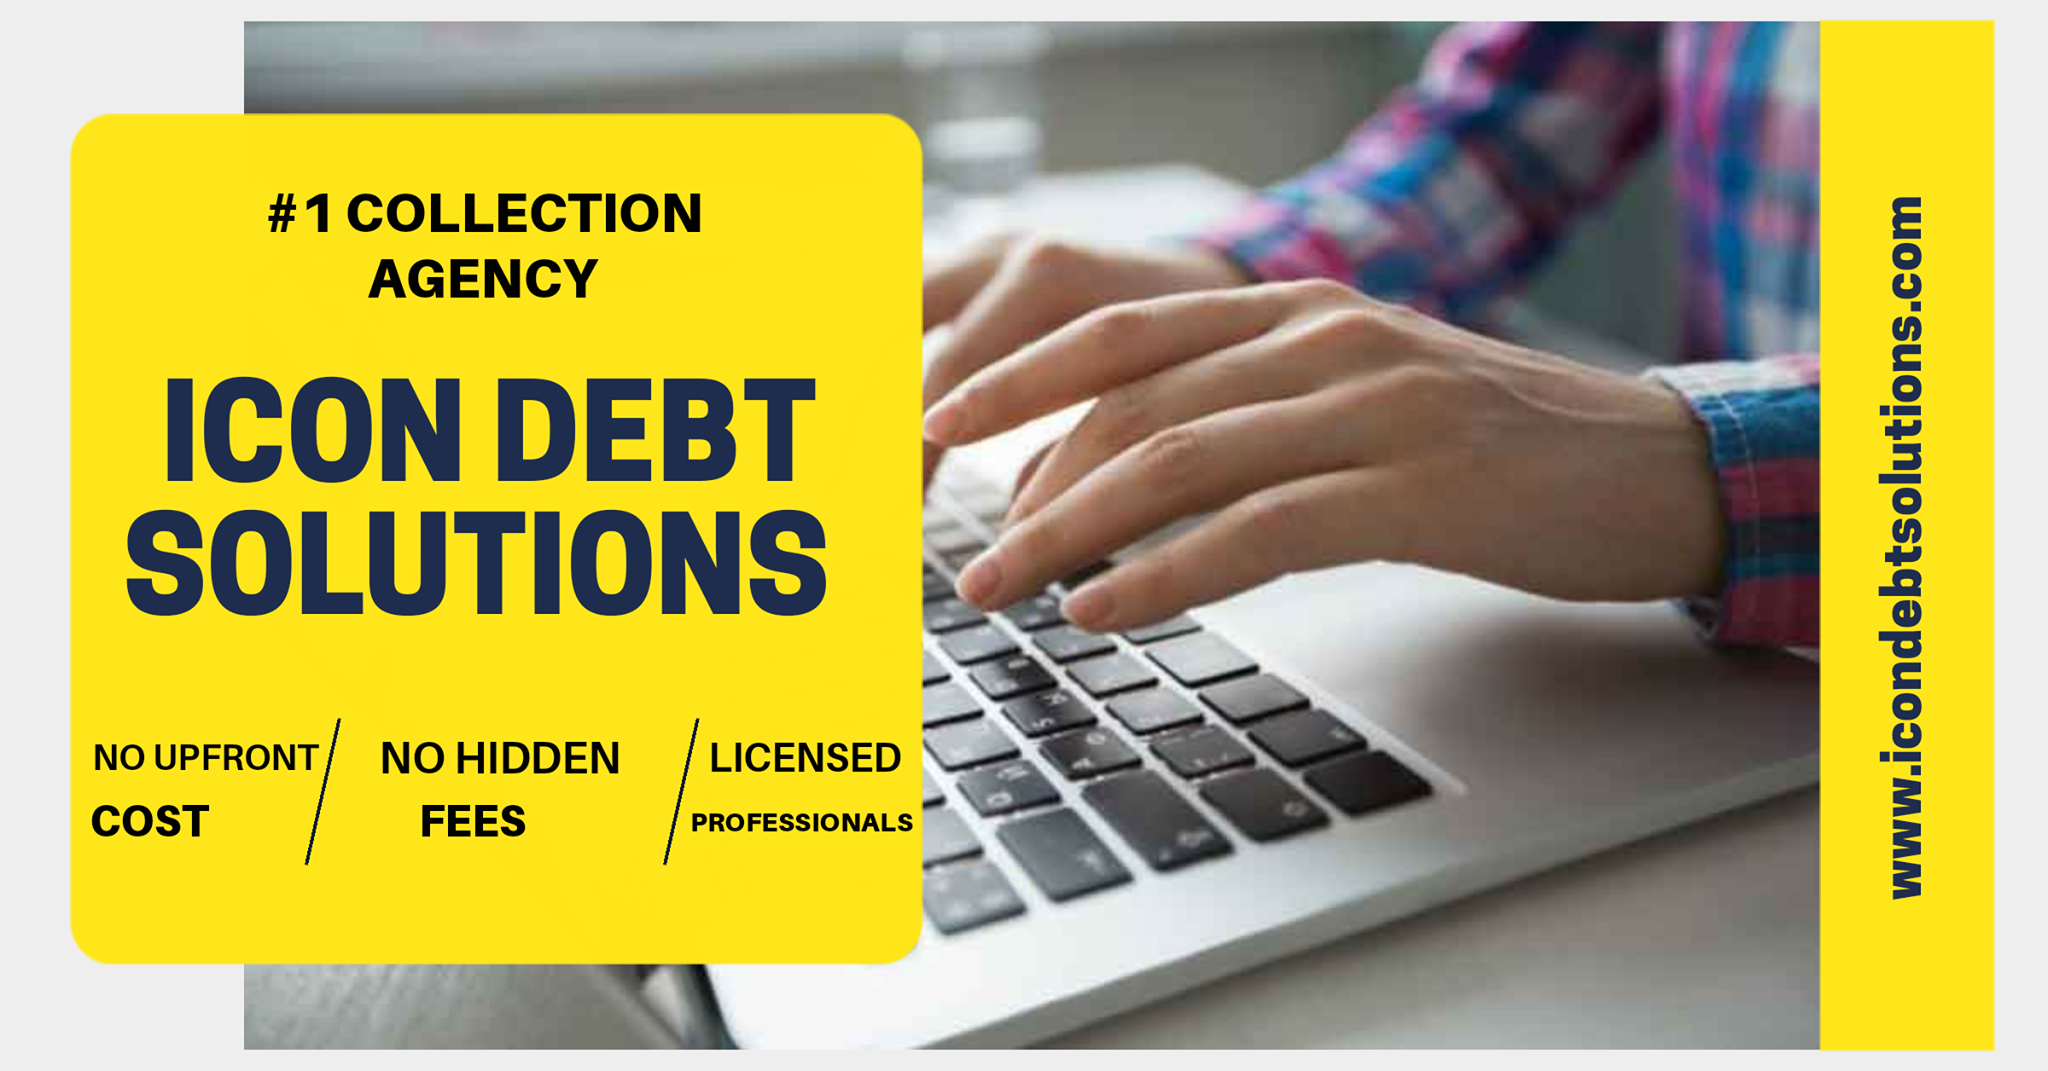 Icon Debt Solutions Inc.